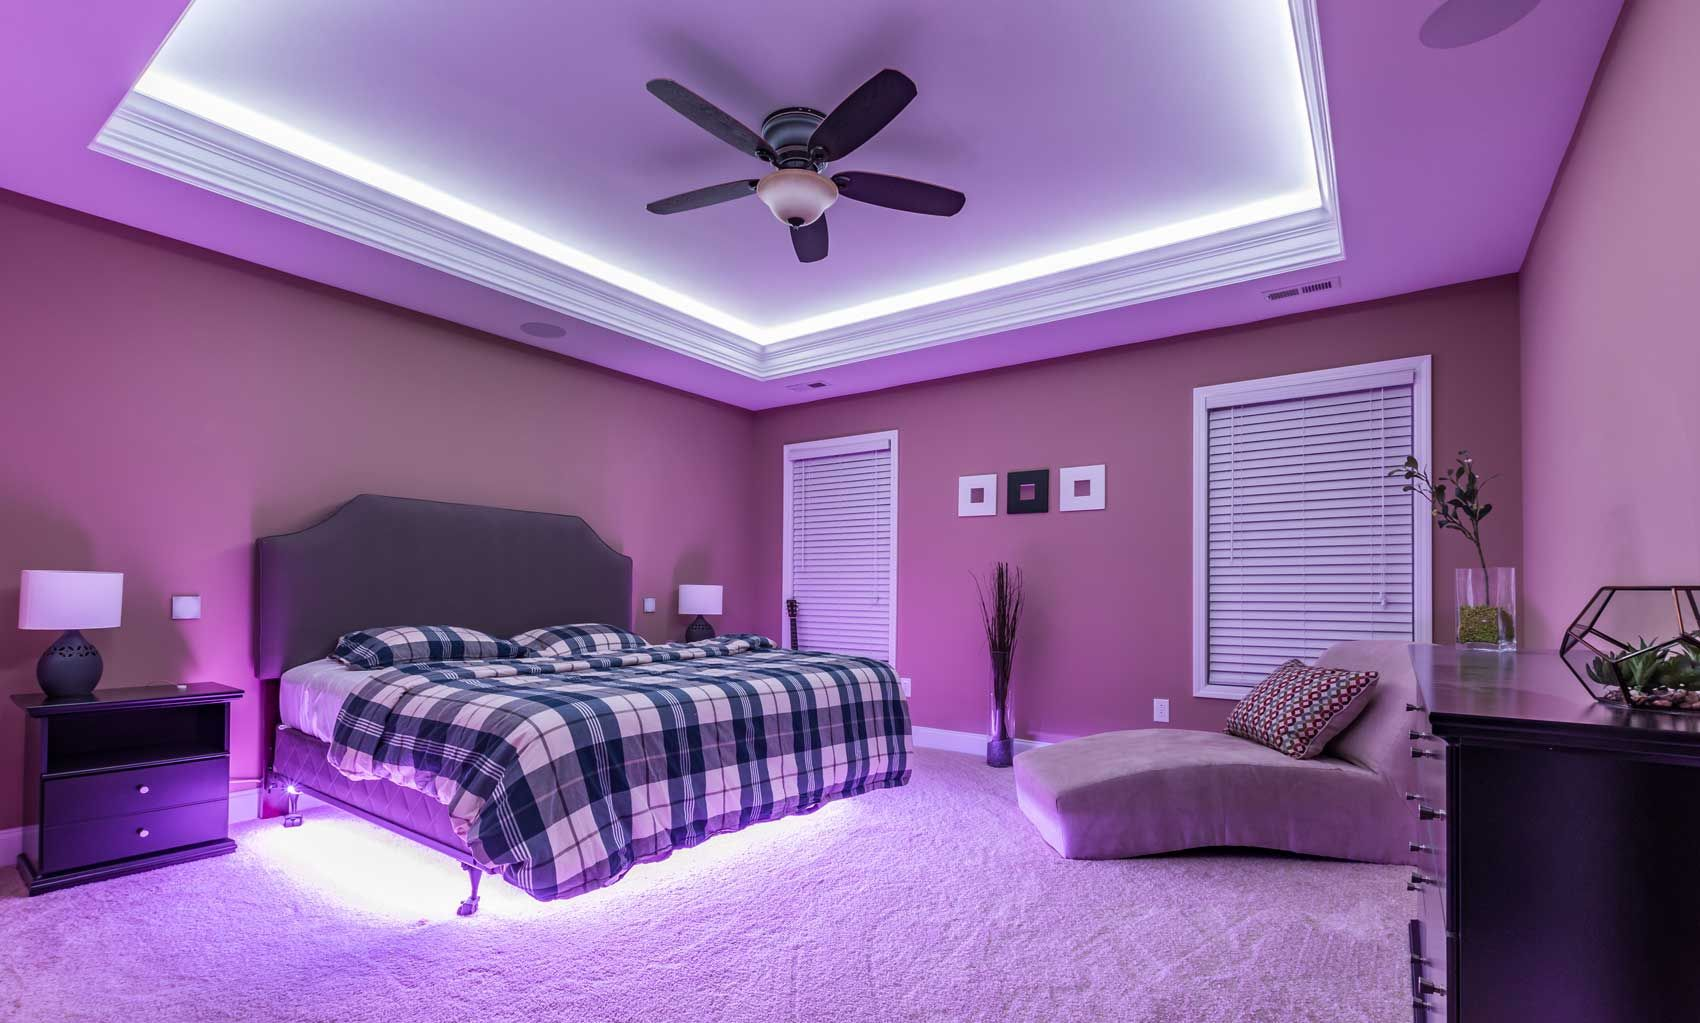 Put The LED Strips On The Ceiling